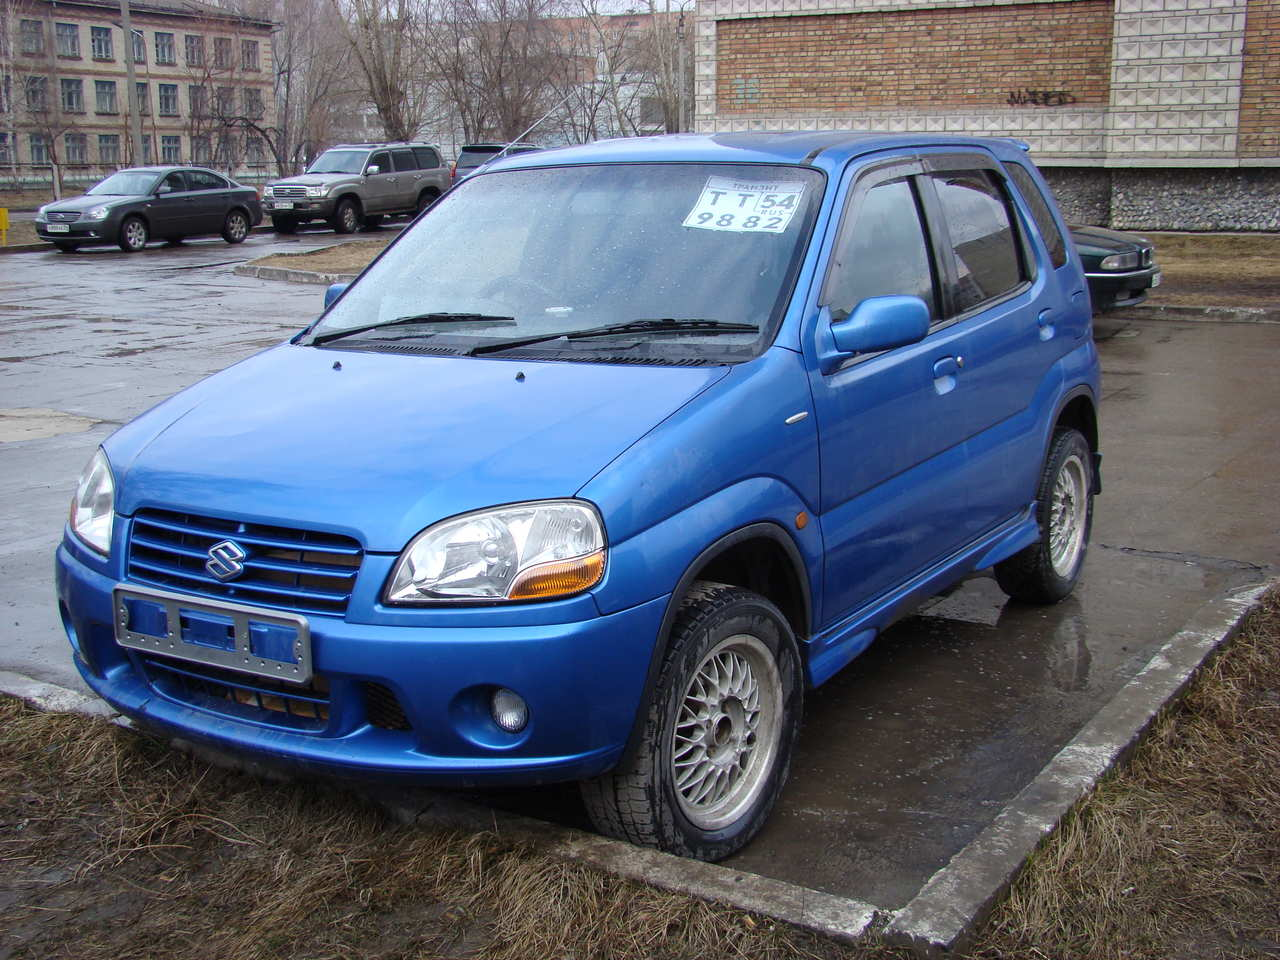 Suzuki Swift 1.3 2000 photo - 9